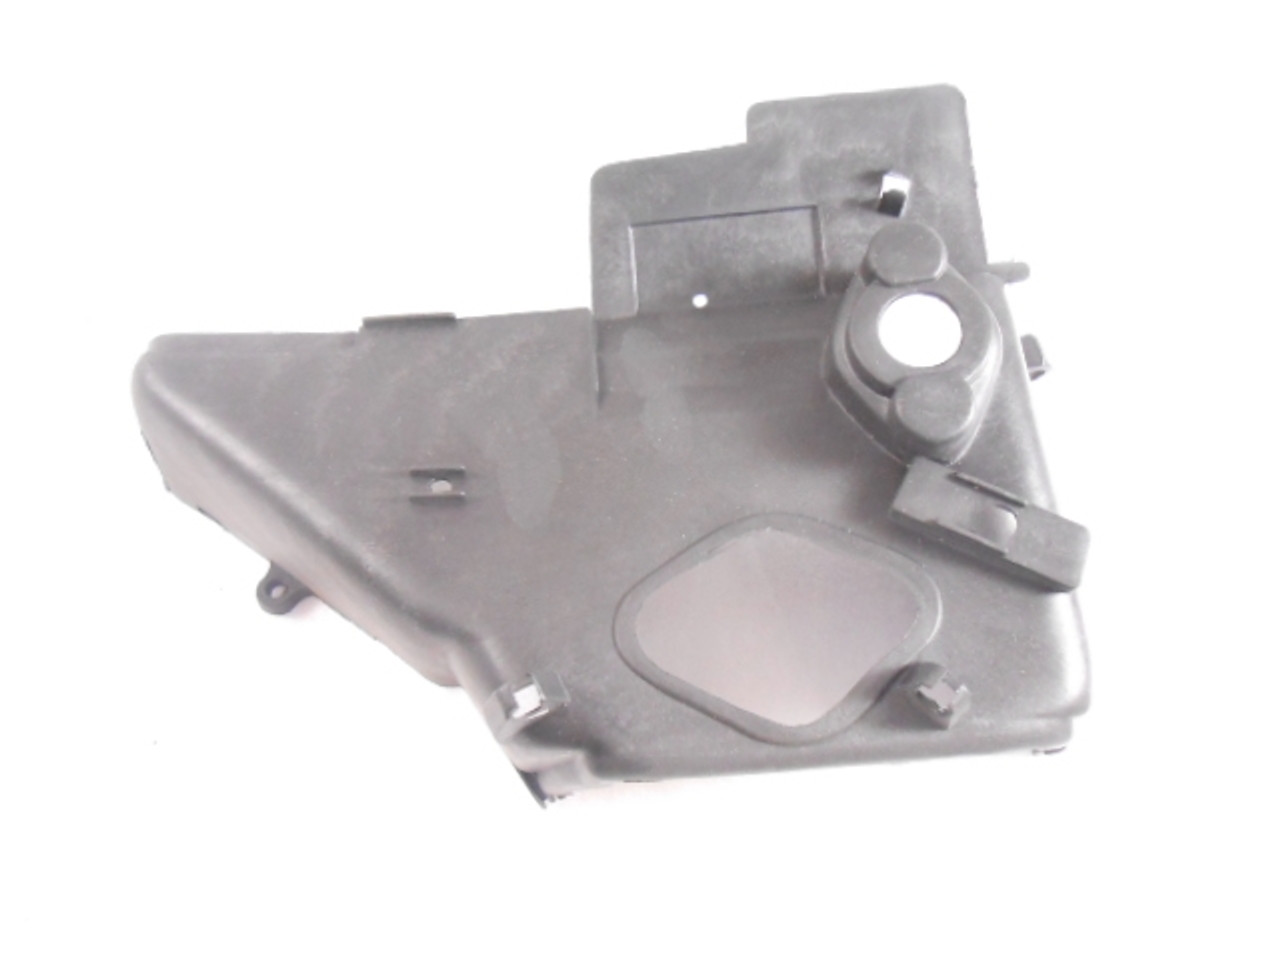 ENGINE SHROUD /COVER 12660-A148-14